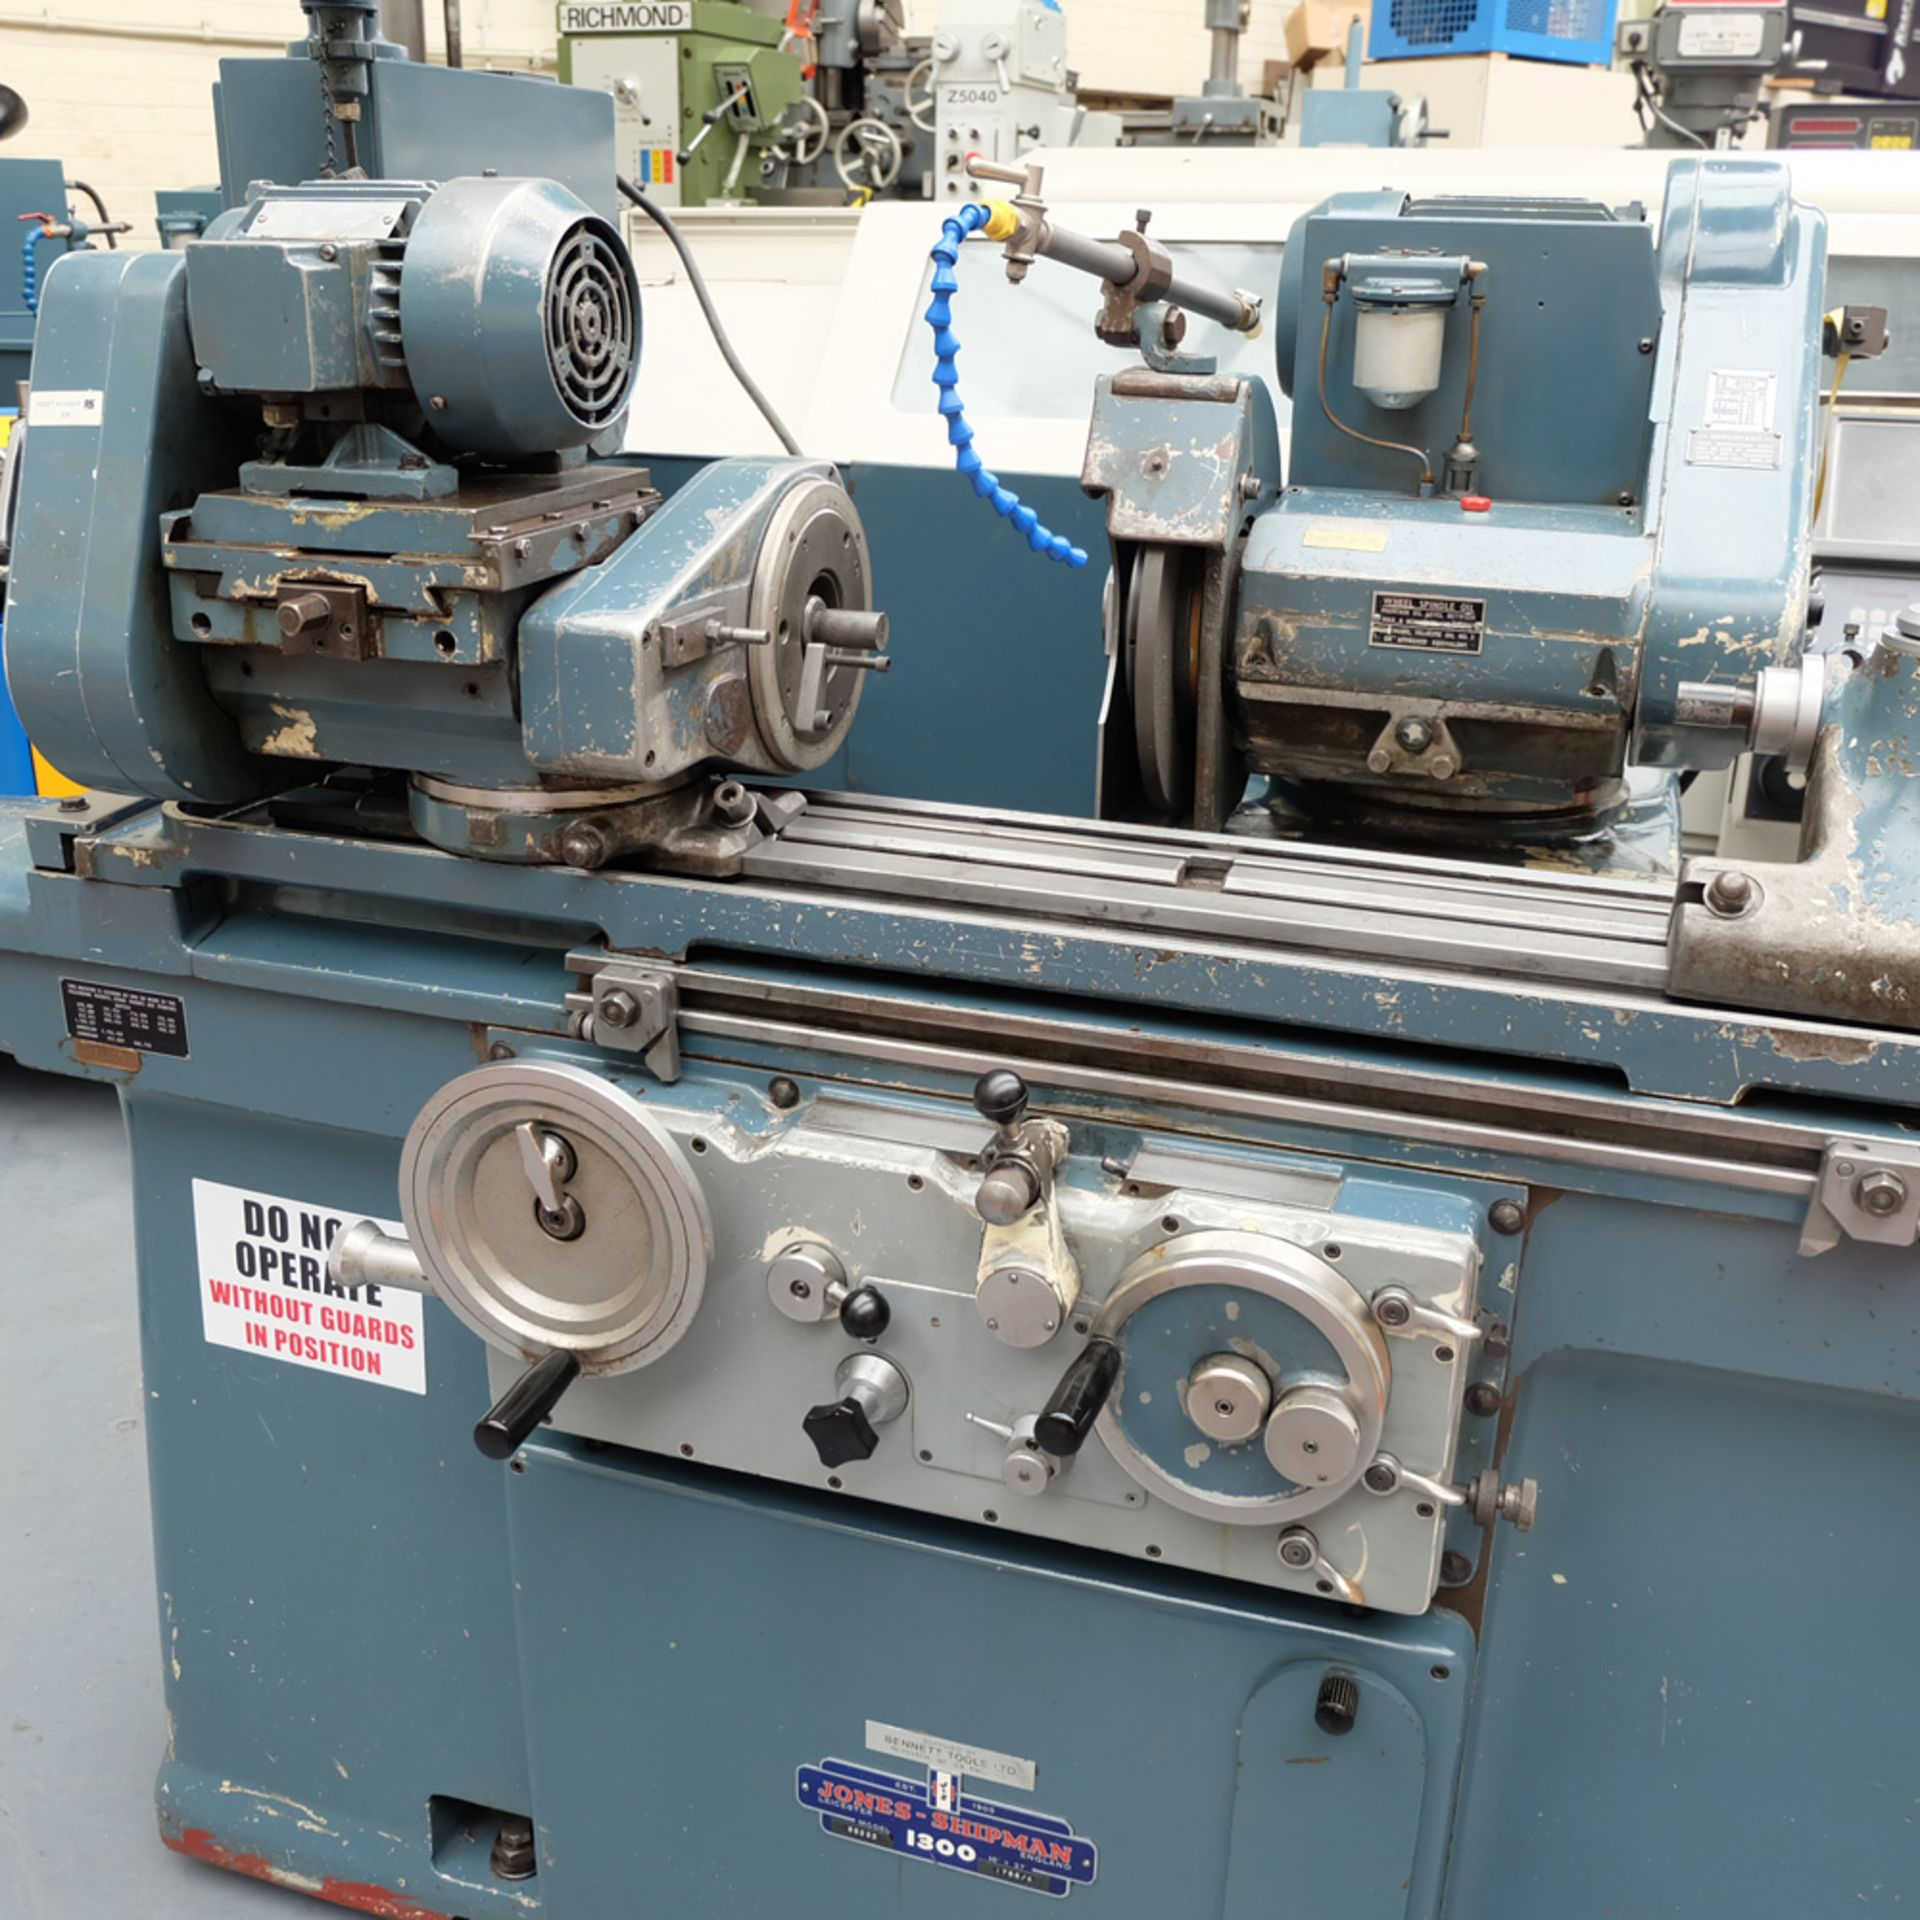 Jones & Shipman Type 1300 Cylindrical Grinder - Image 2 of 15